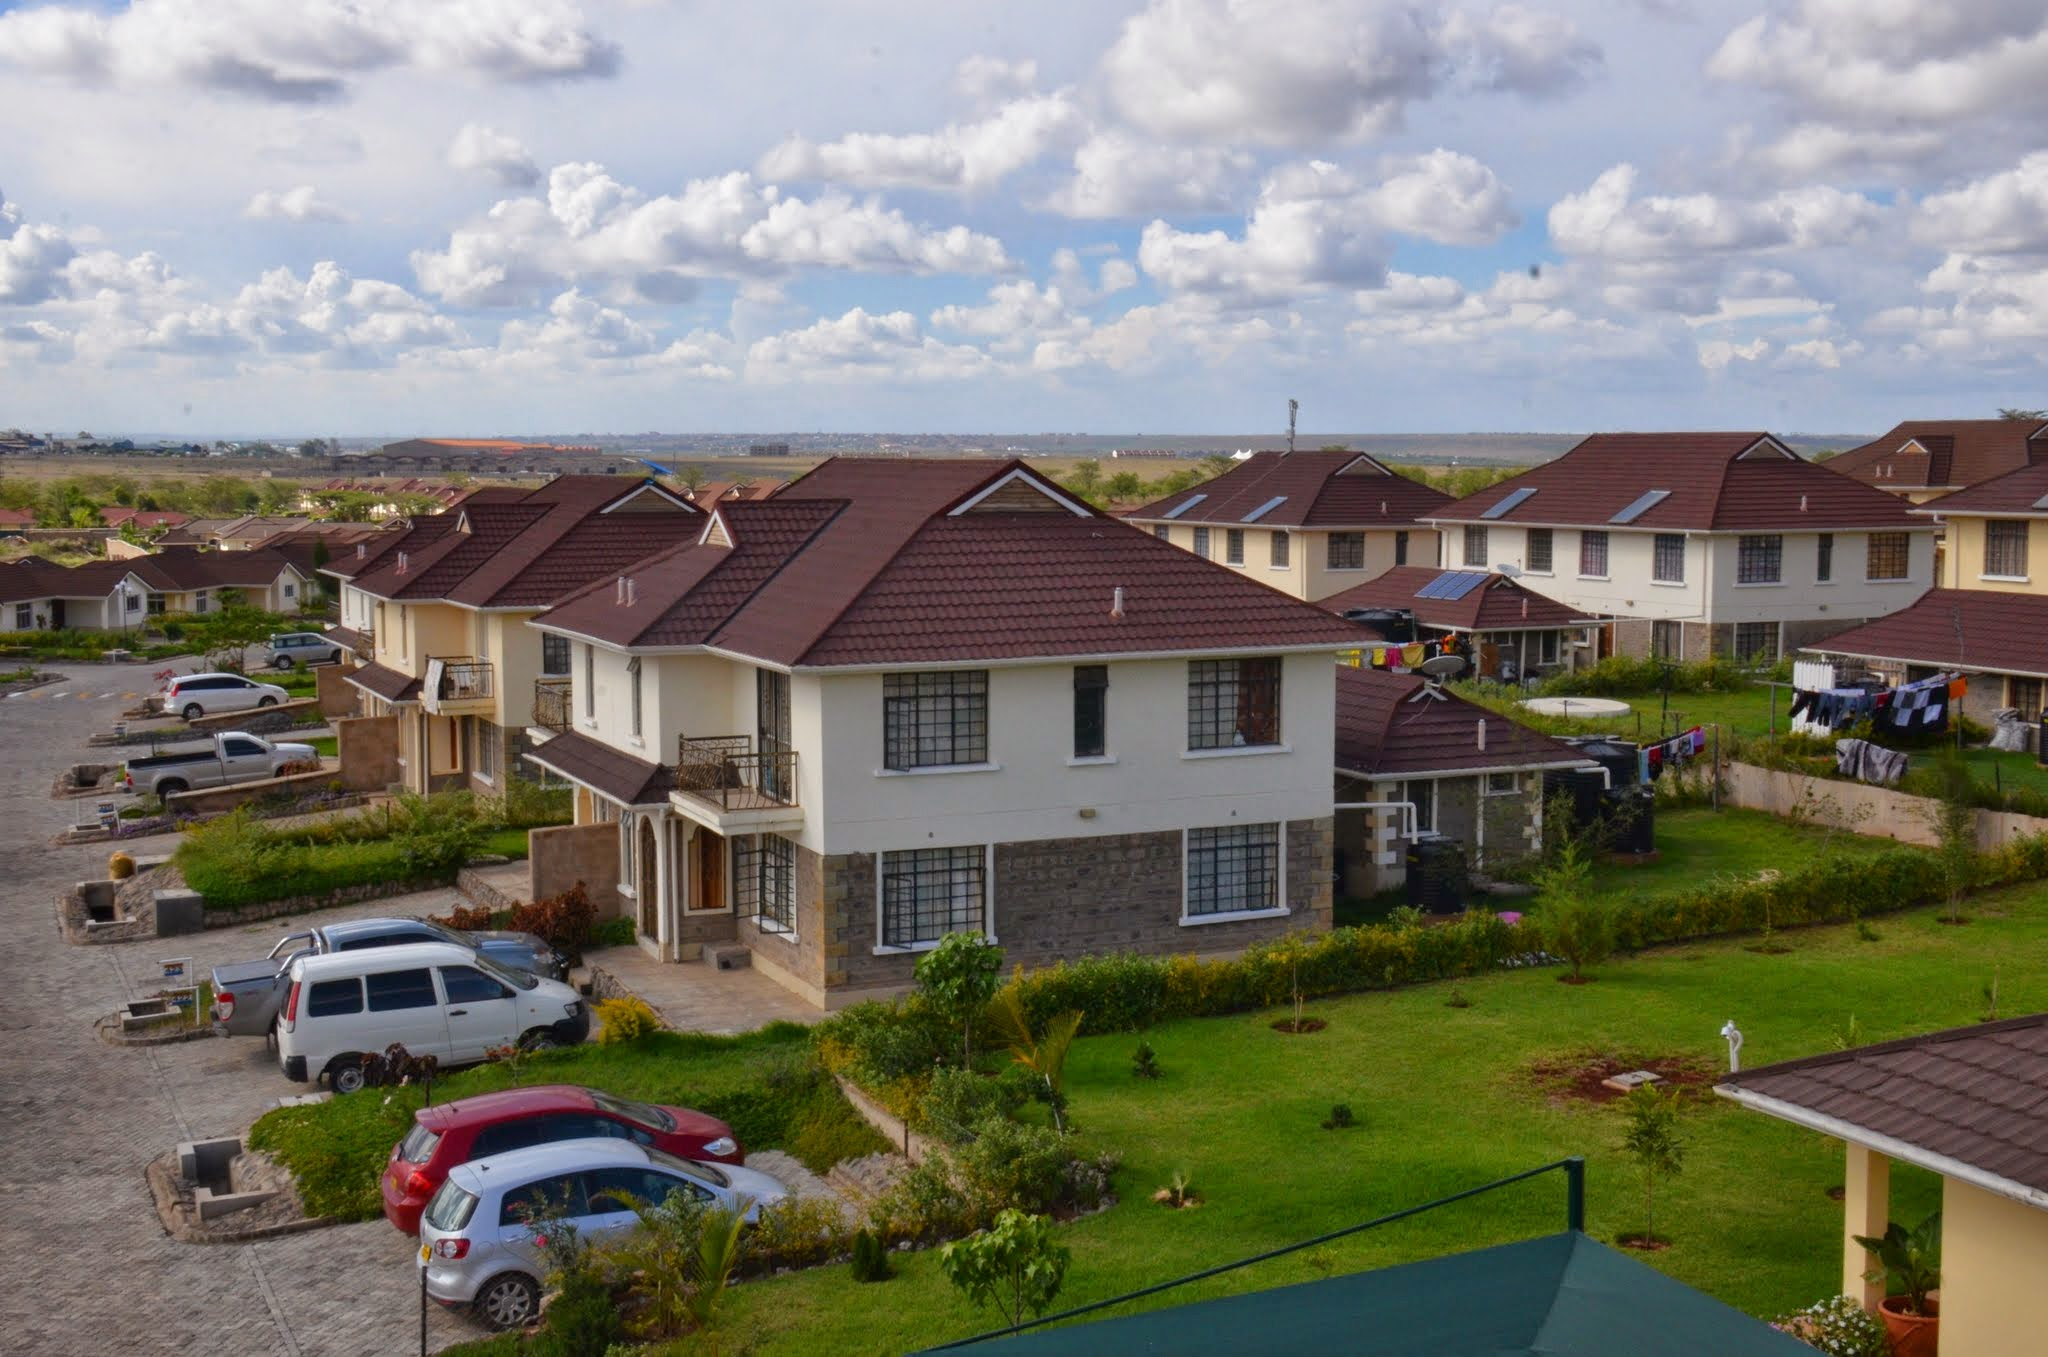 Investors continue to cash in on the real estate sector in kenya driven by i the huge housing deficit ii high returns which came in at 24 3 as of